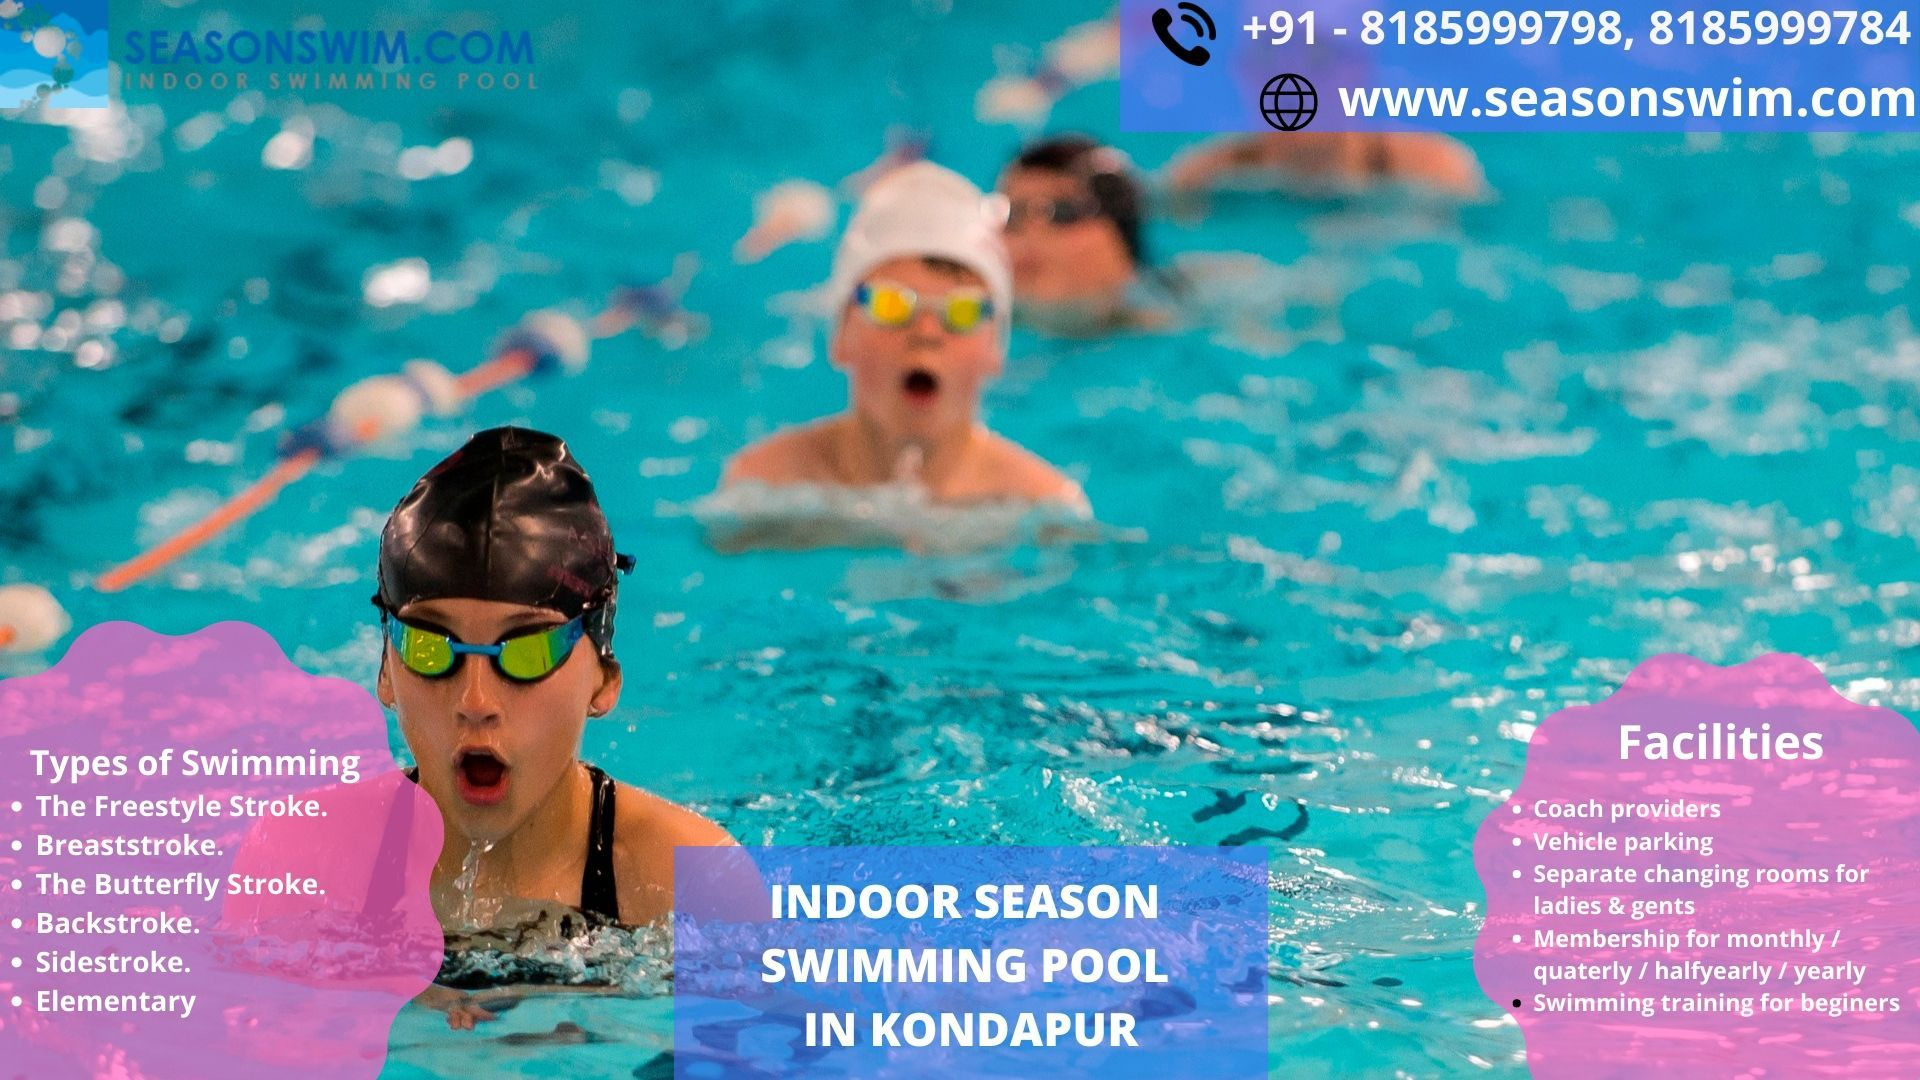 Season Swimming Pool Services Swimming Lessons For Kids Swimming Classes Swim Lessons